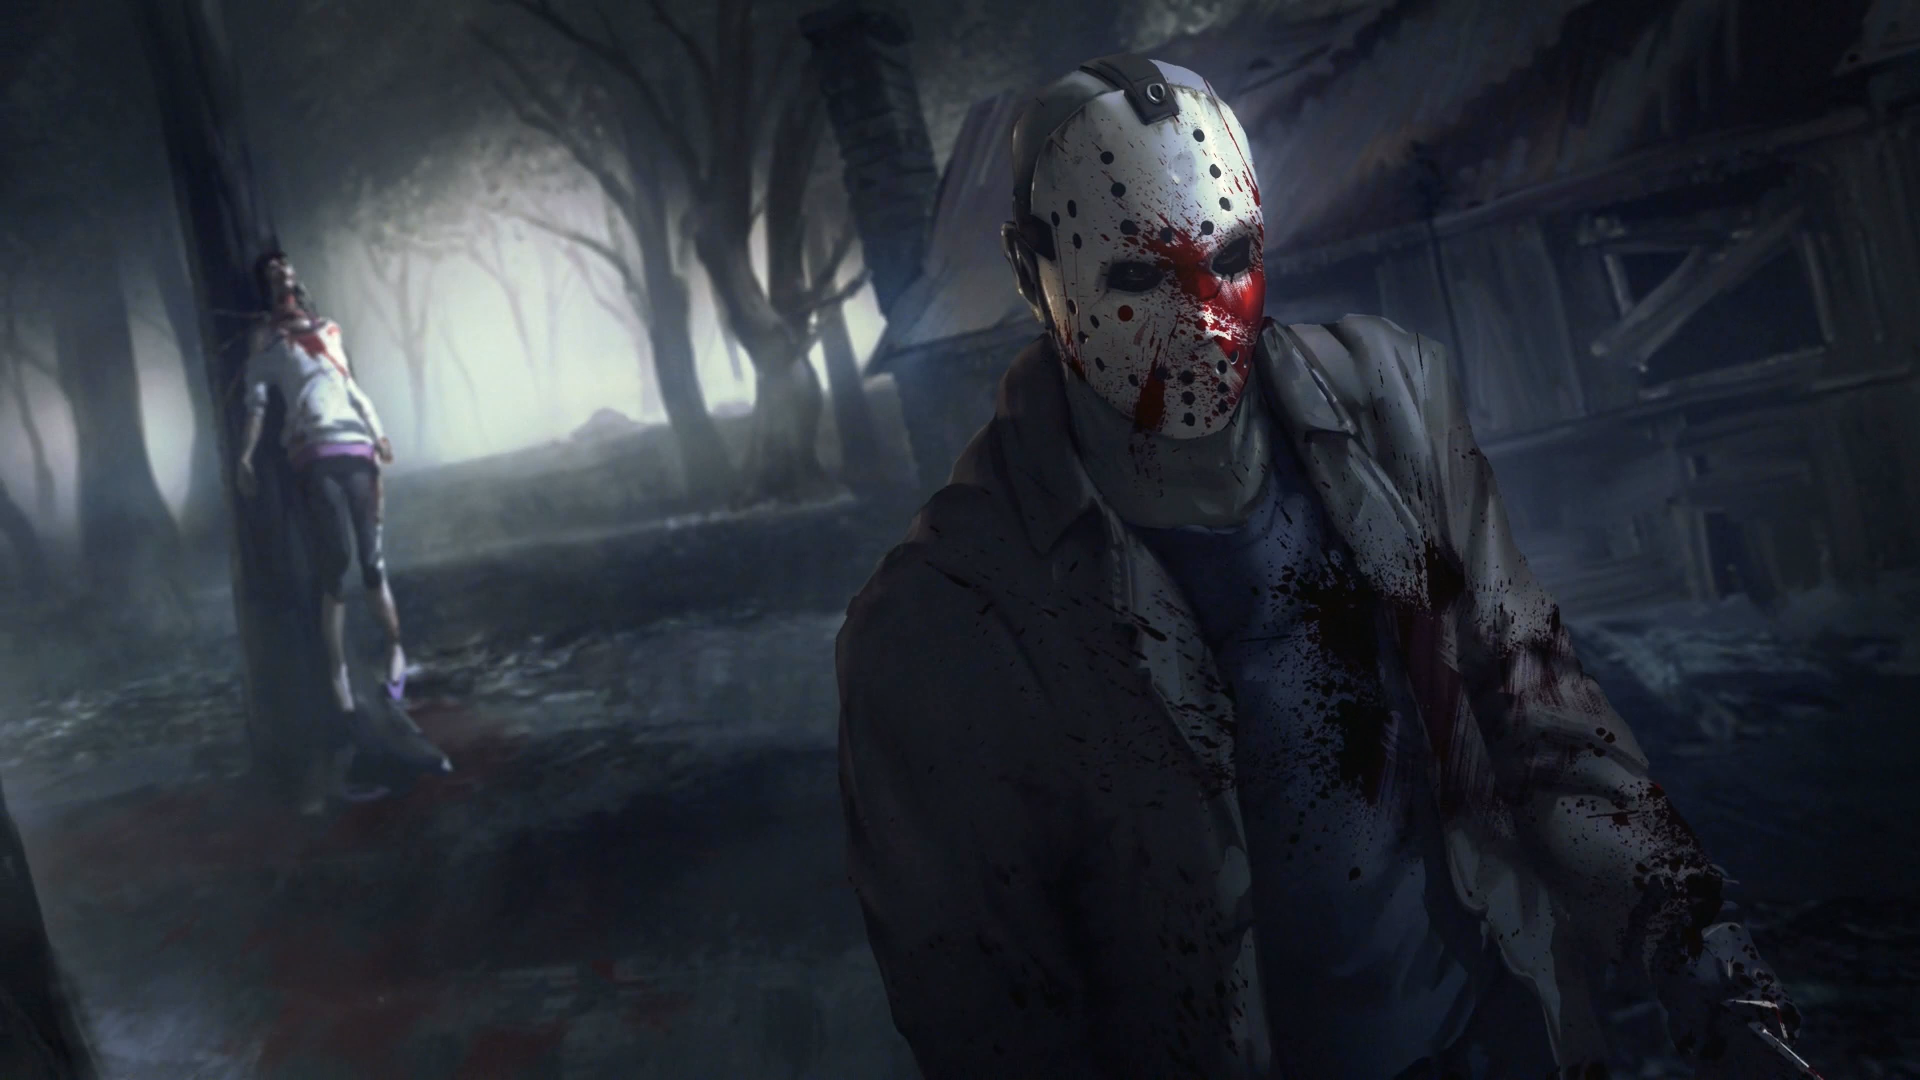 friday the 13th the game hd wallpaper background image